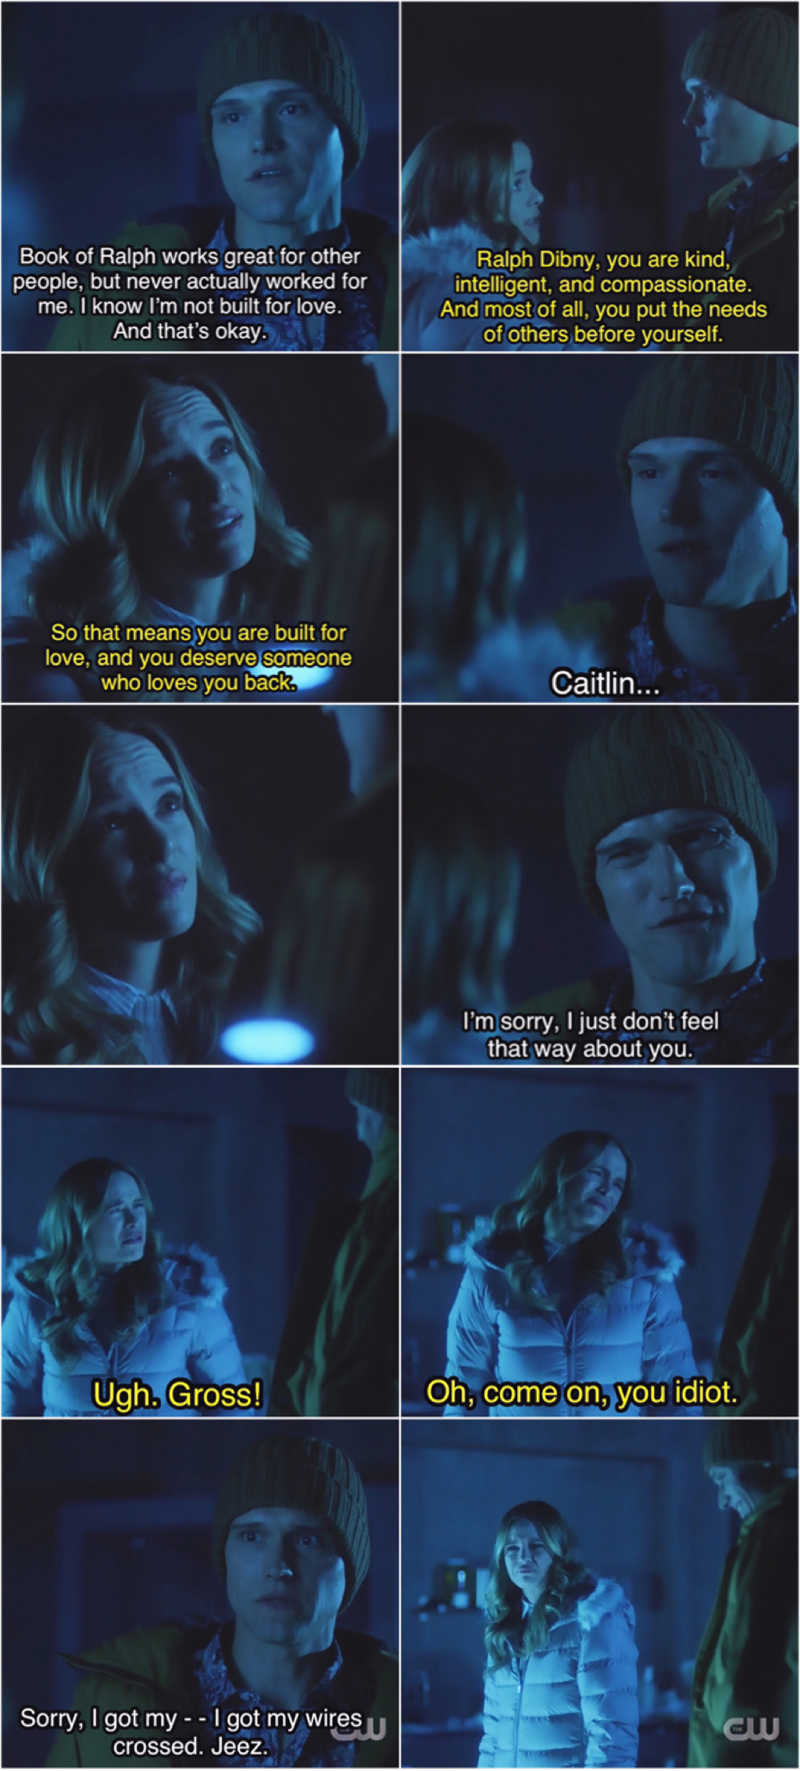 I loved this 😂 Caitlin's facial expression says it all 😖🤣